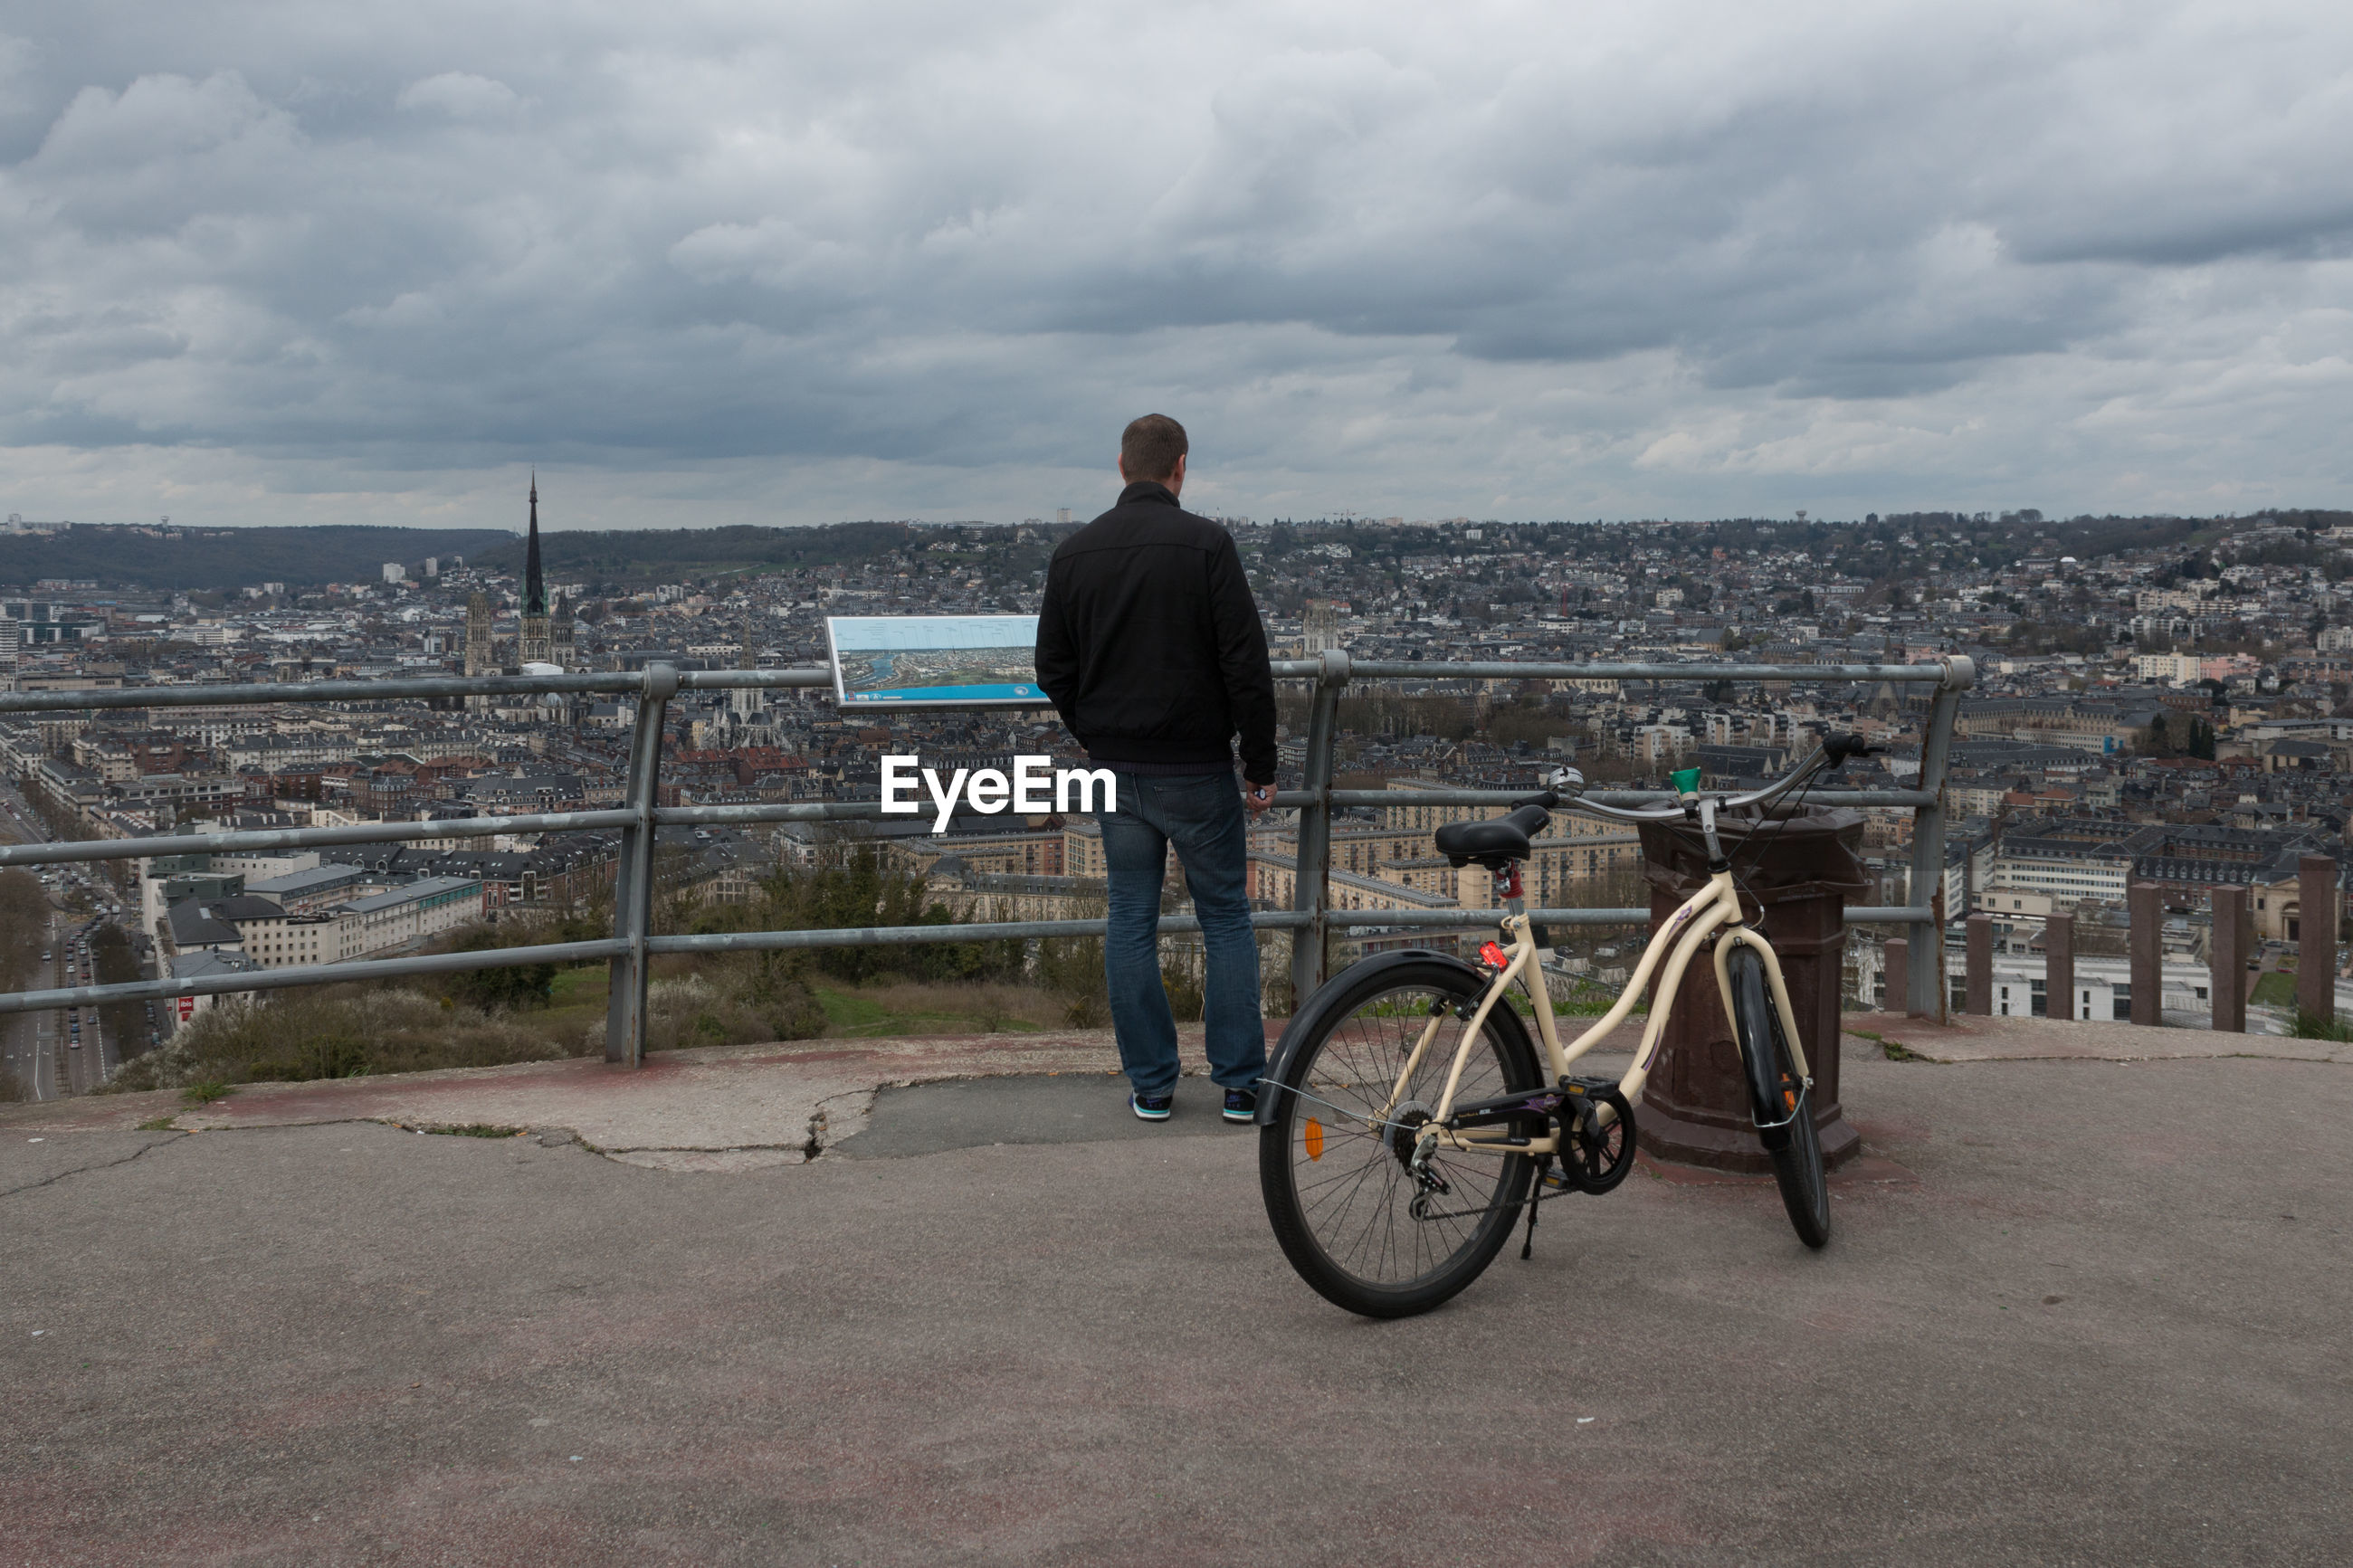 MAN WITH BICYCLE IN CITY AGAINST SKY